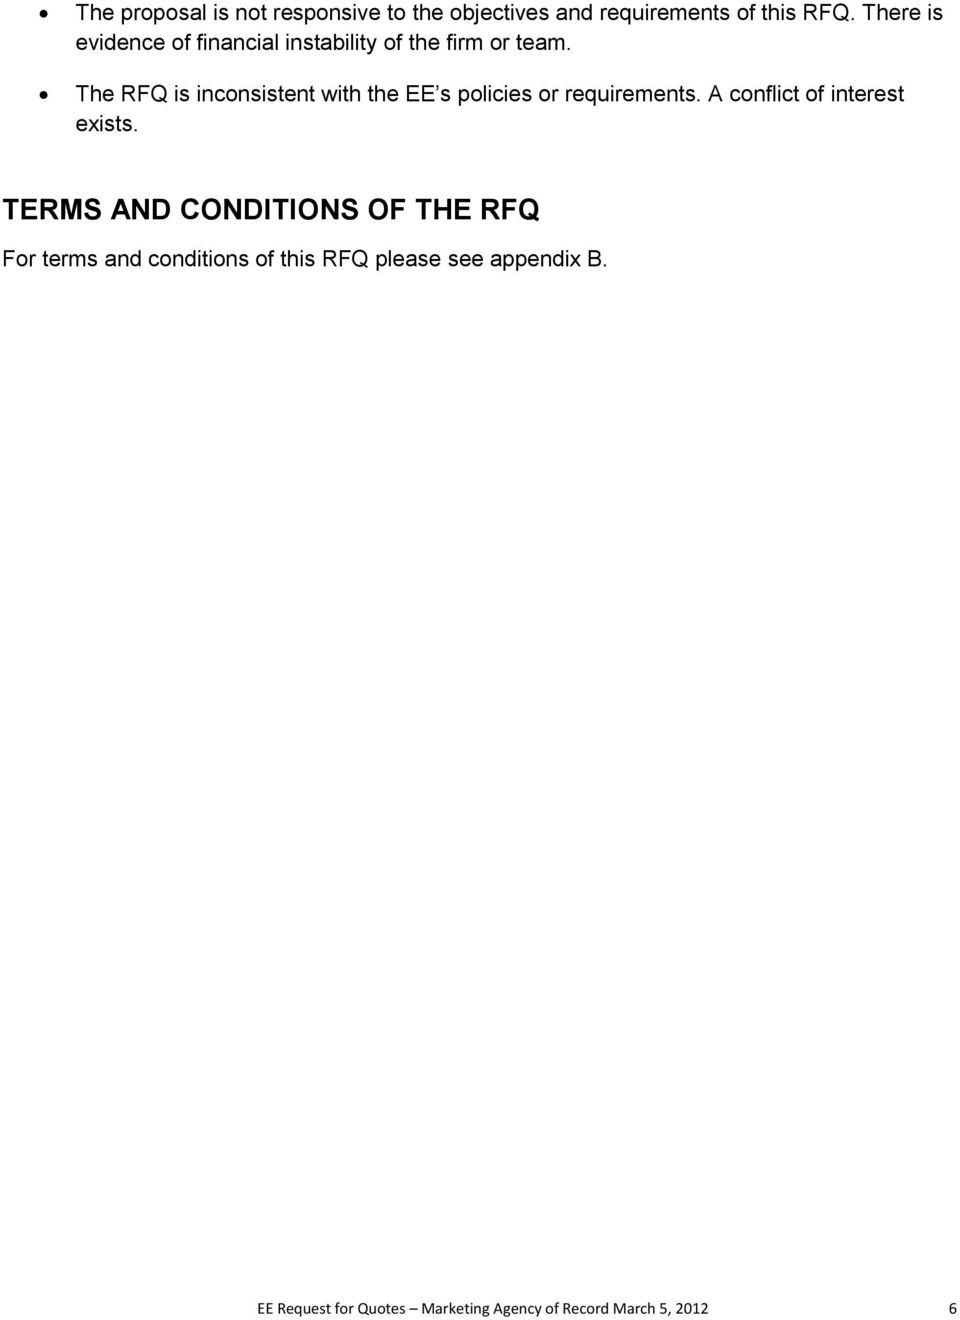 The RFQ is inconsistent with the EE s policies or requirements. A conflict of interest exists.